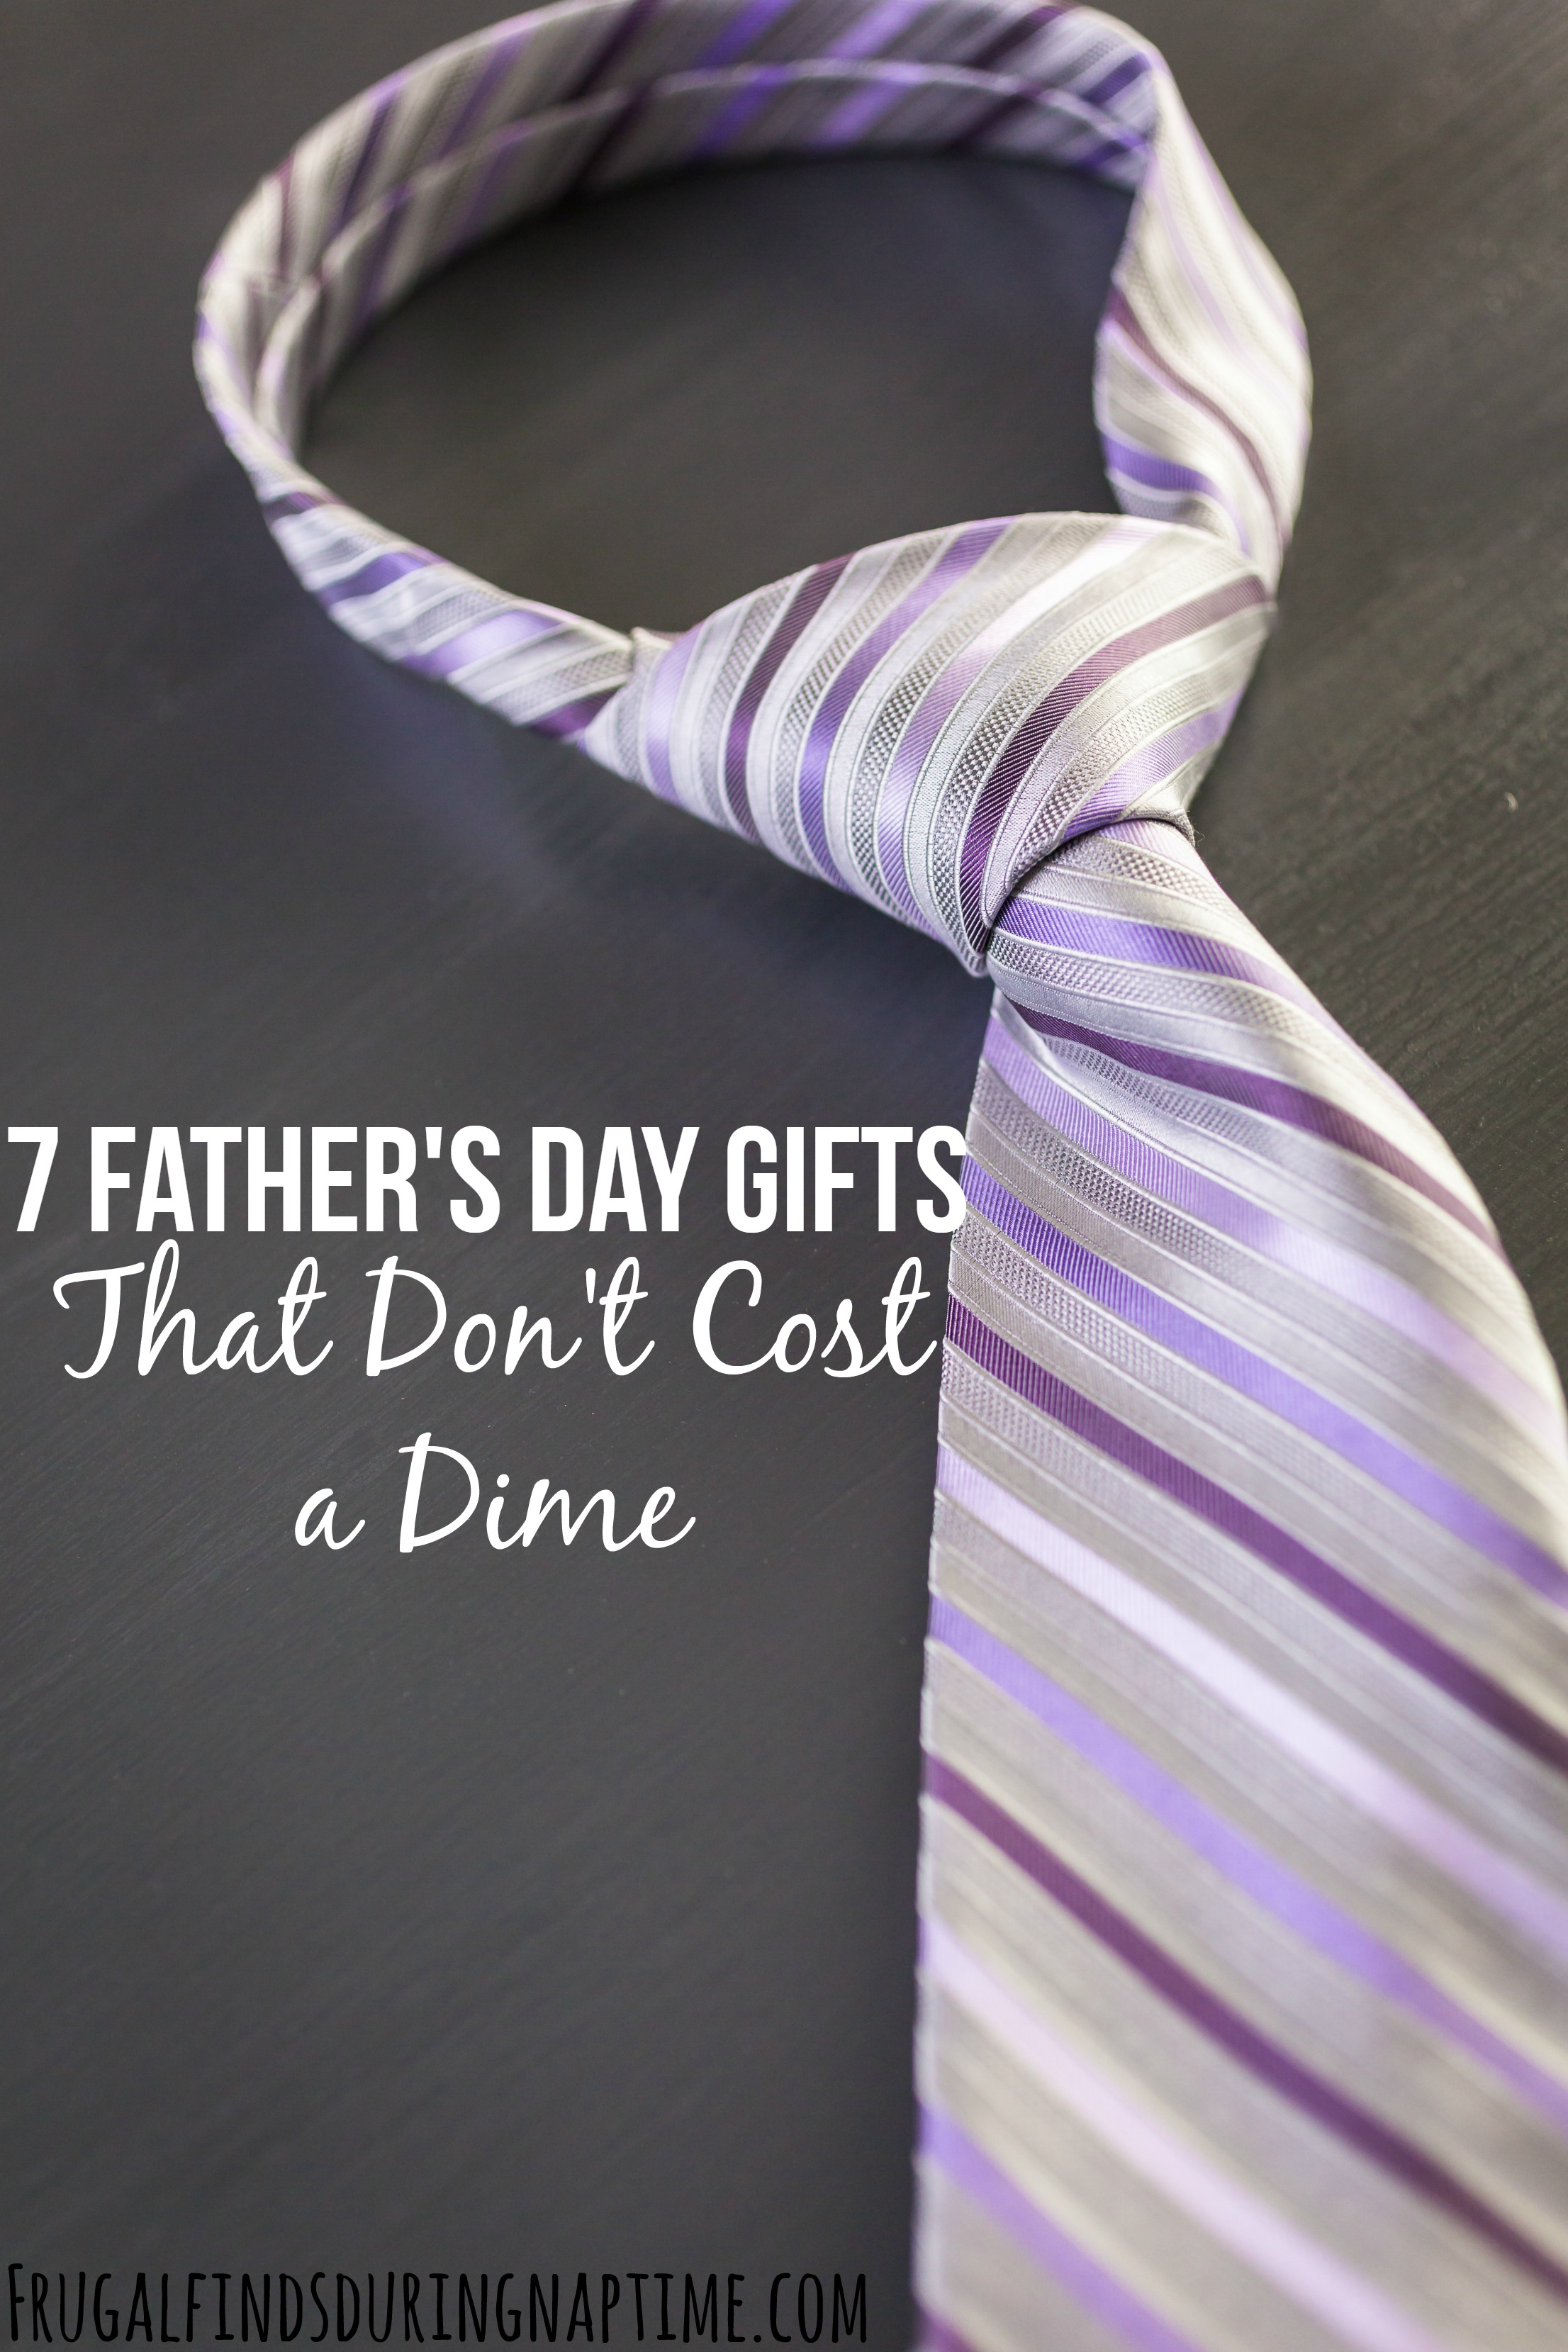 With a little creativity you can still show Dad how loved he is without spending a dime.